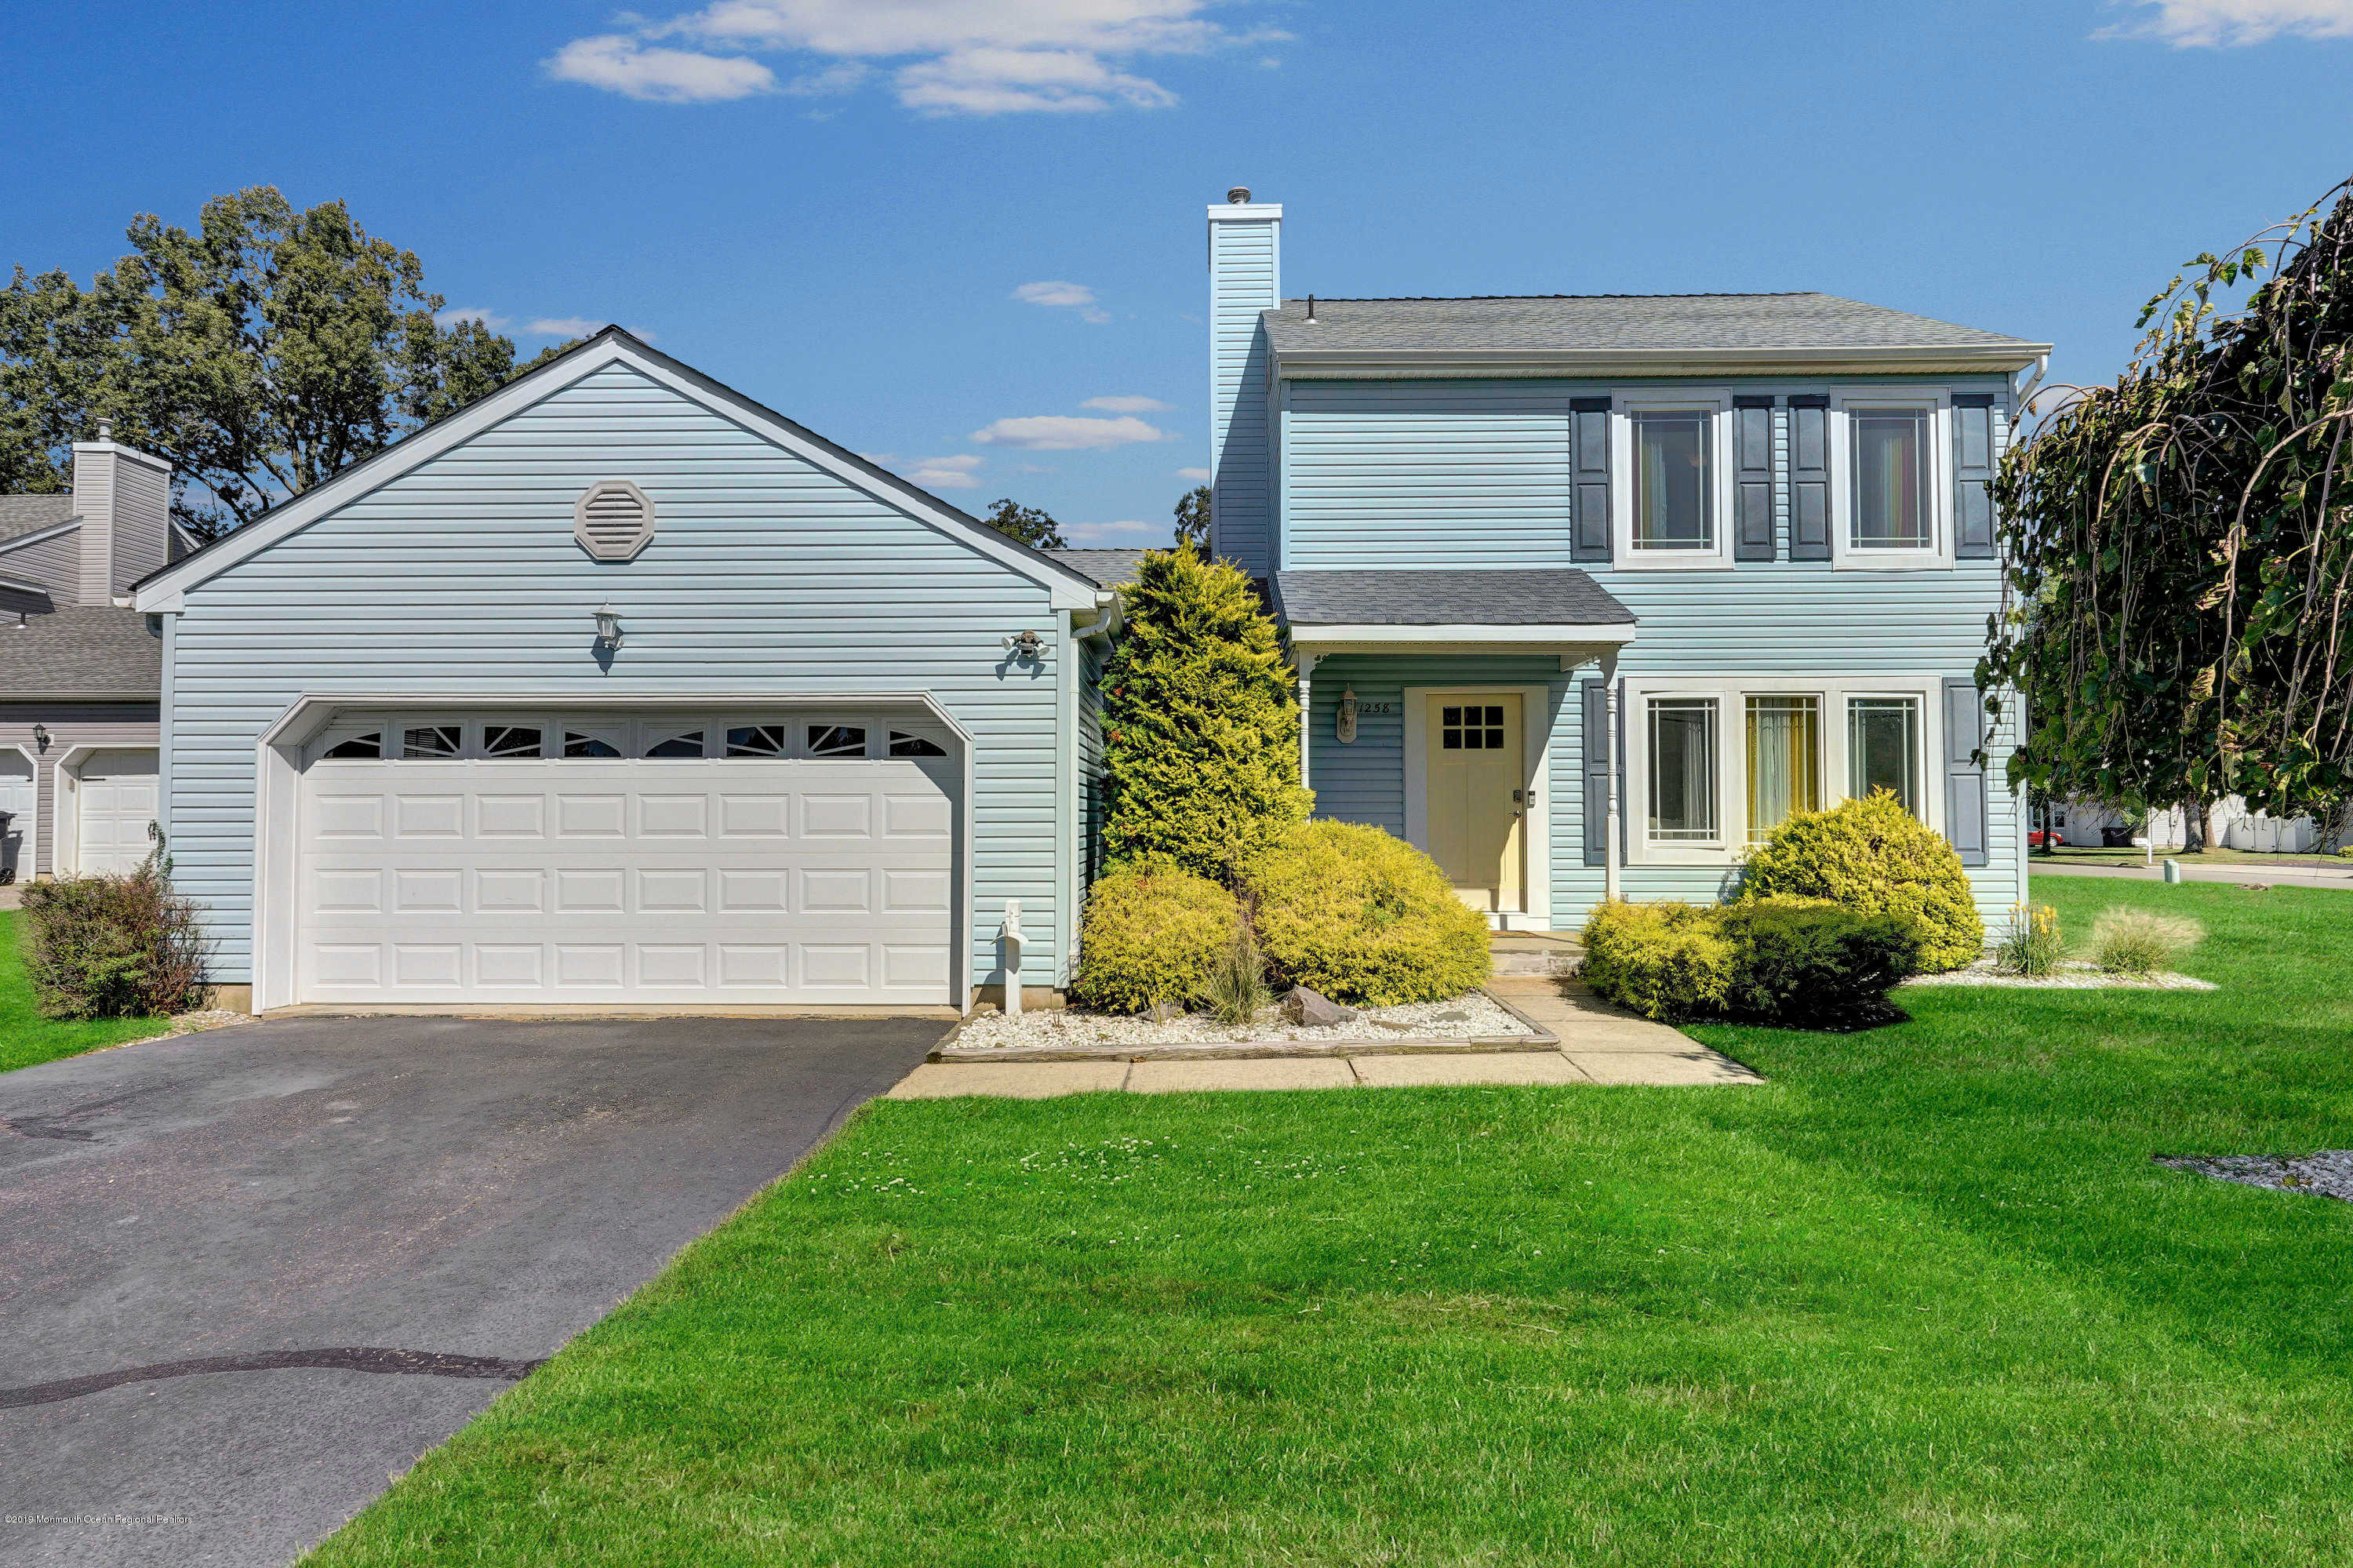 1258 Hereford Close, Toms River twp (tom), NJ 08753 now has a new price of $334,900!